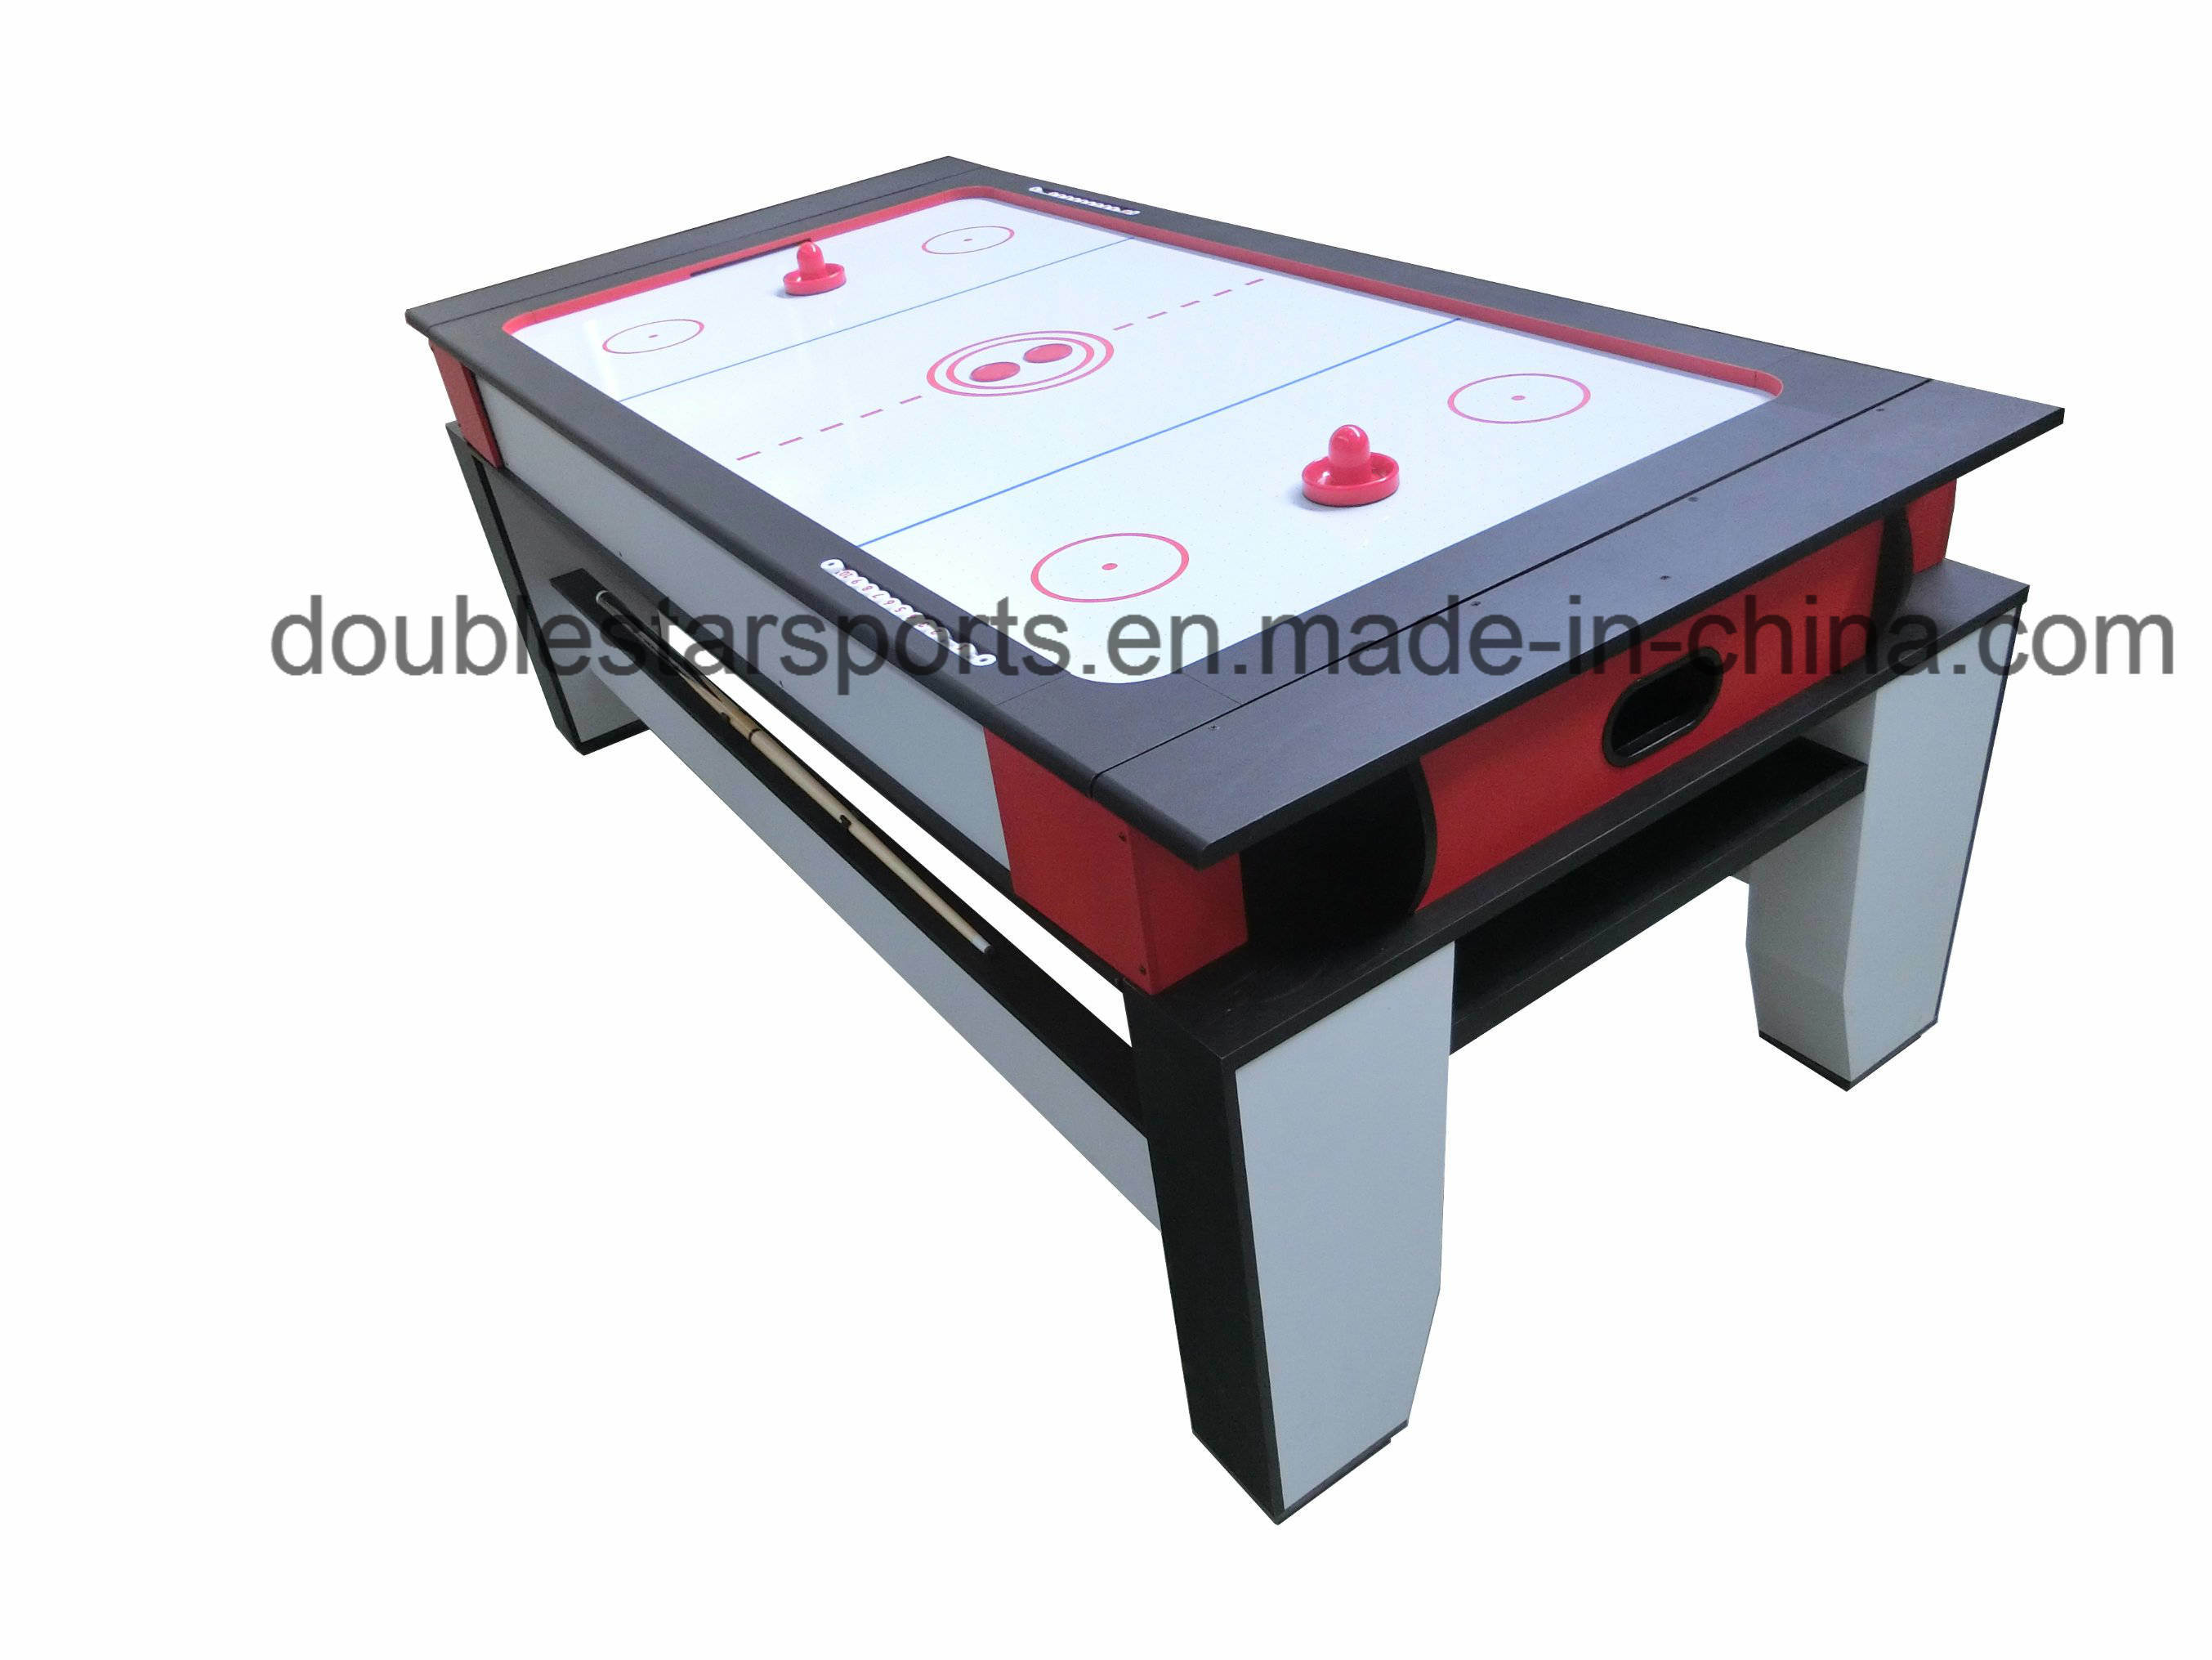 2 in One Pool Table Air Hockey Table Combo with Auto Ball Return System